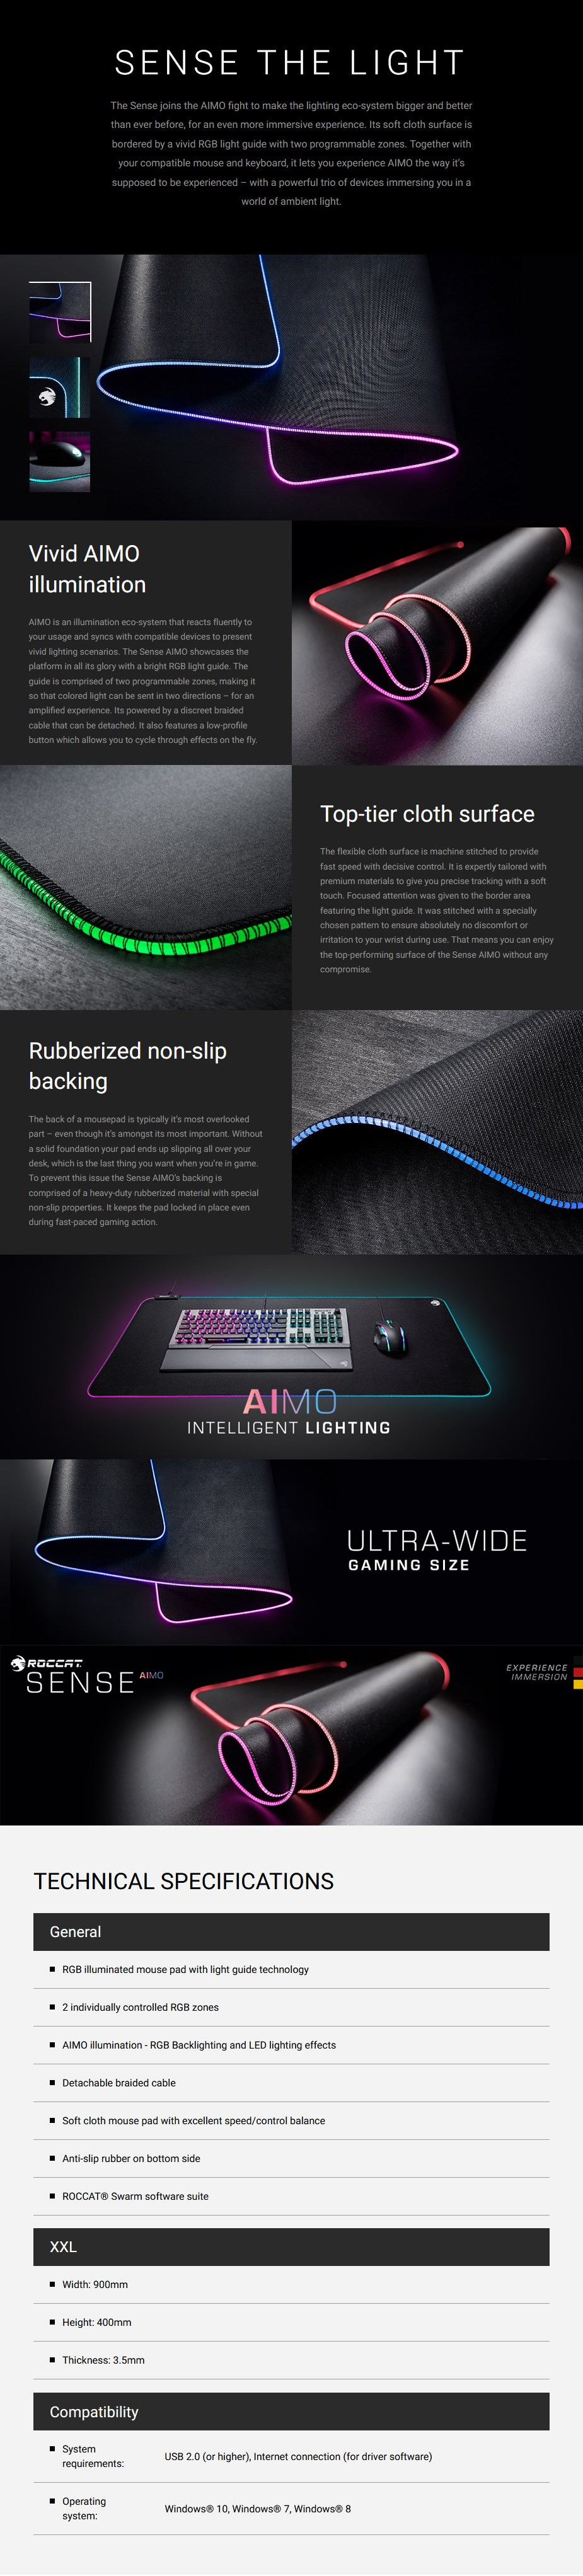 Roccat Sense AIMO RGB Gaming Mouse Pad - XXL - Overview 1